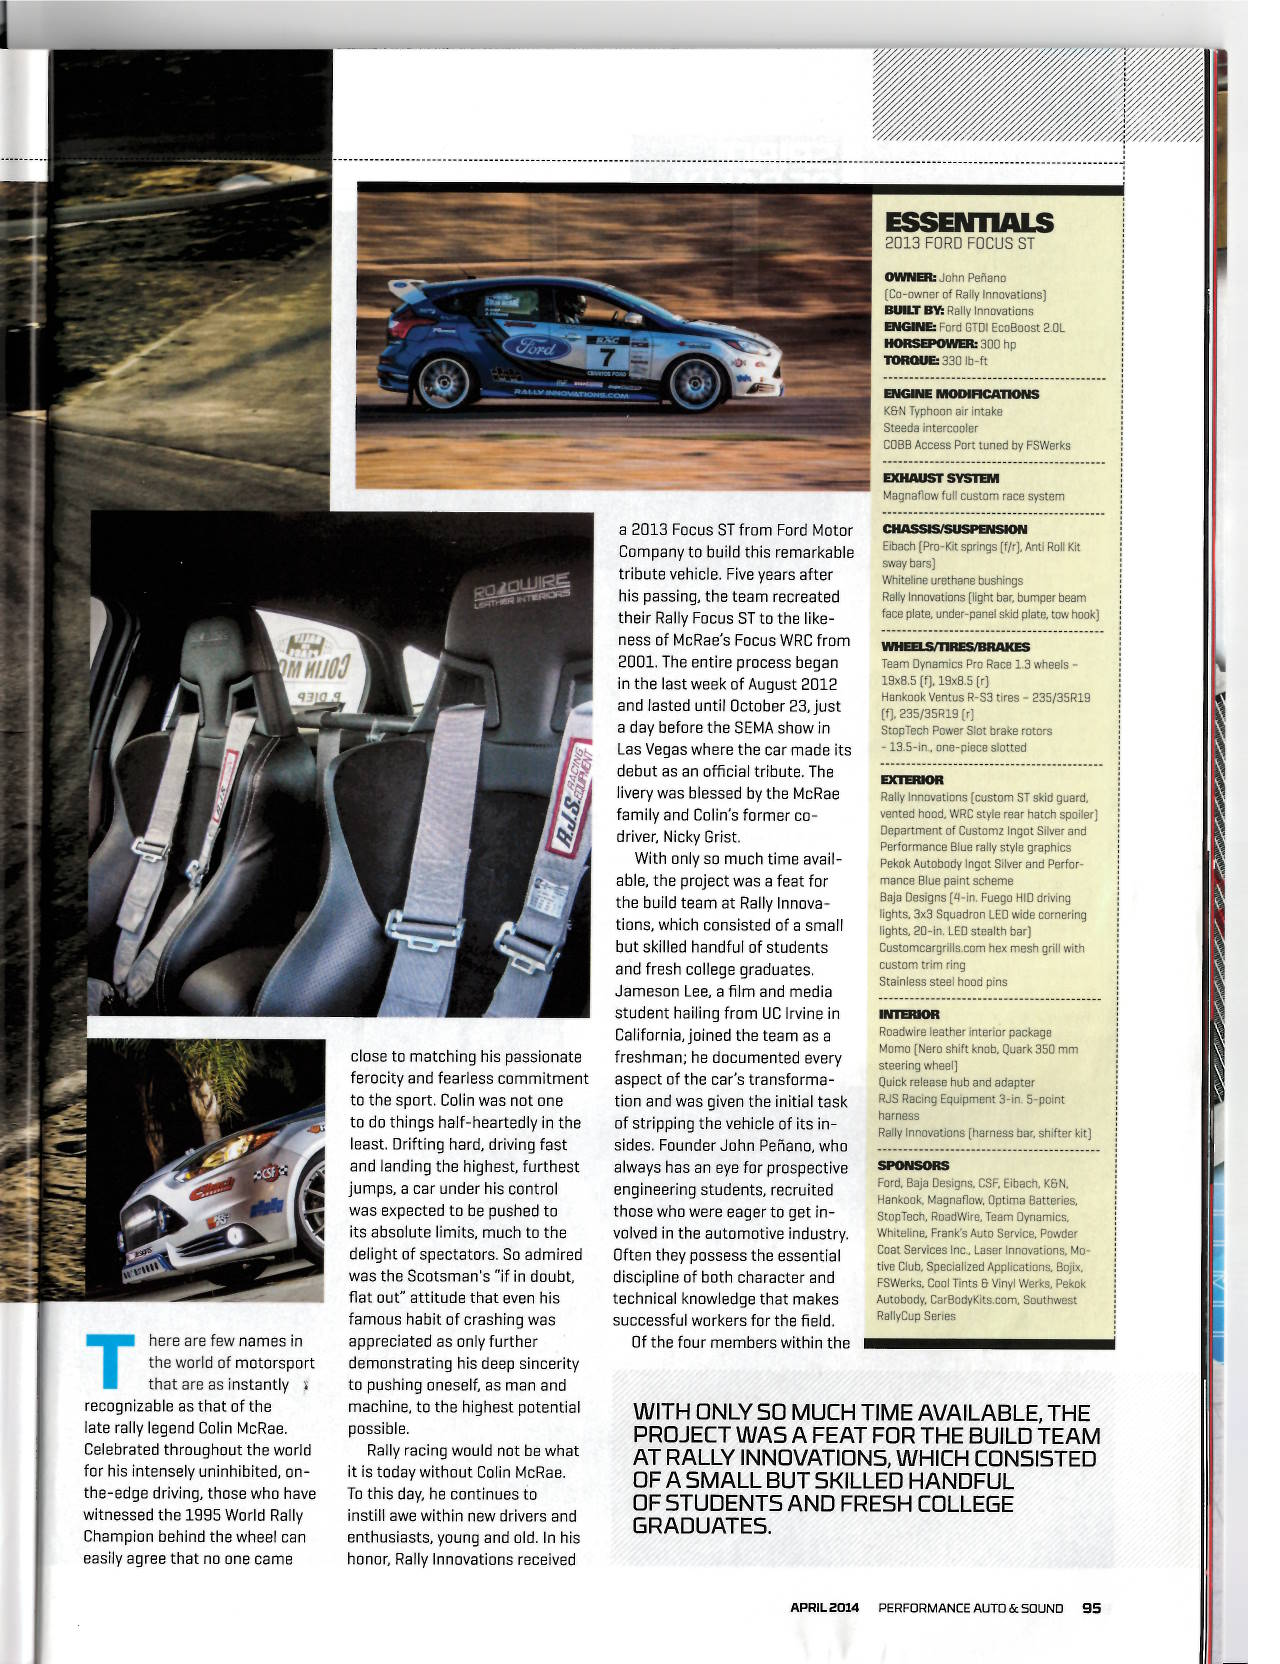 PasMag Article - April 2014 (1)_Page_4.jpg